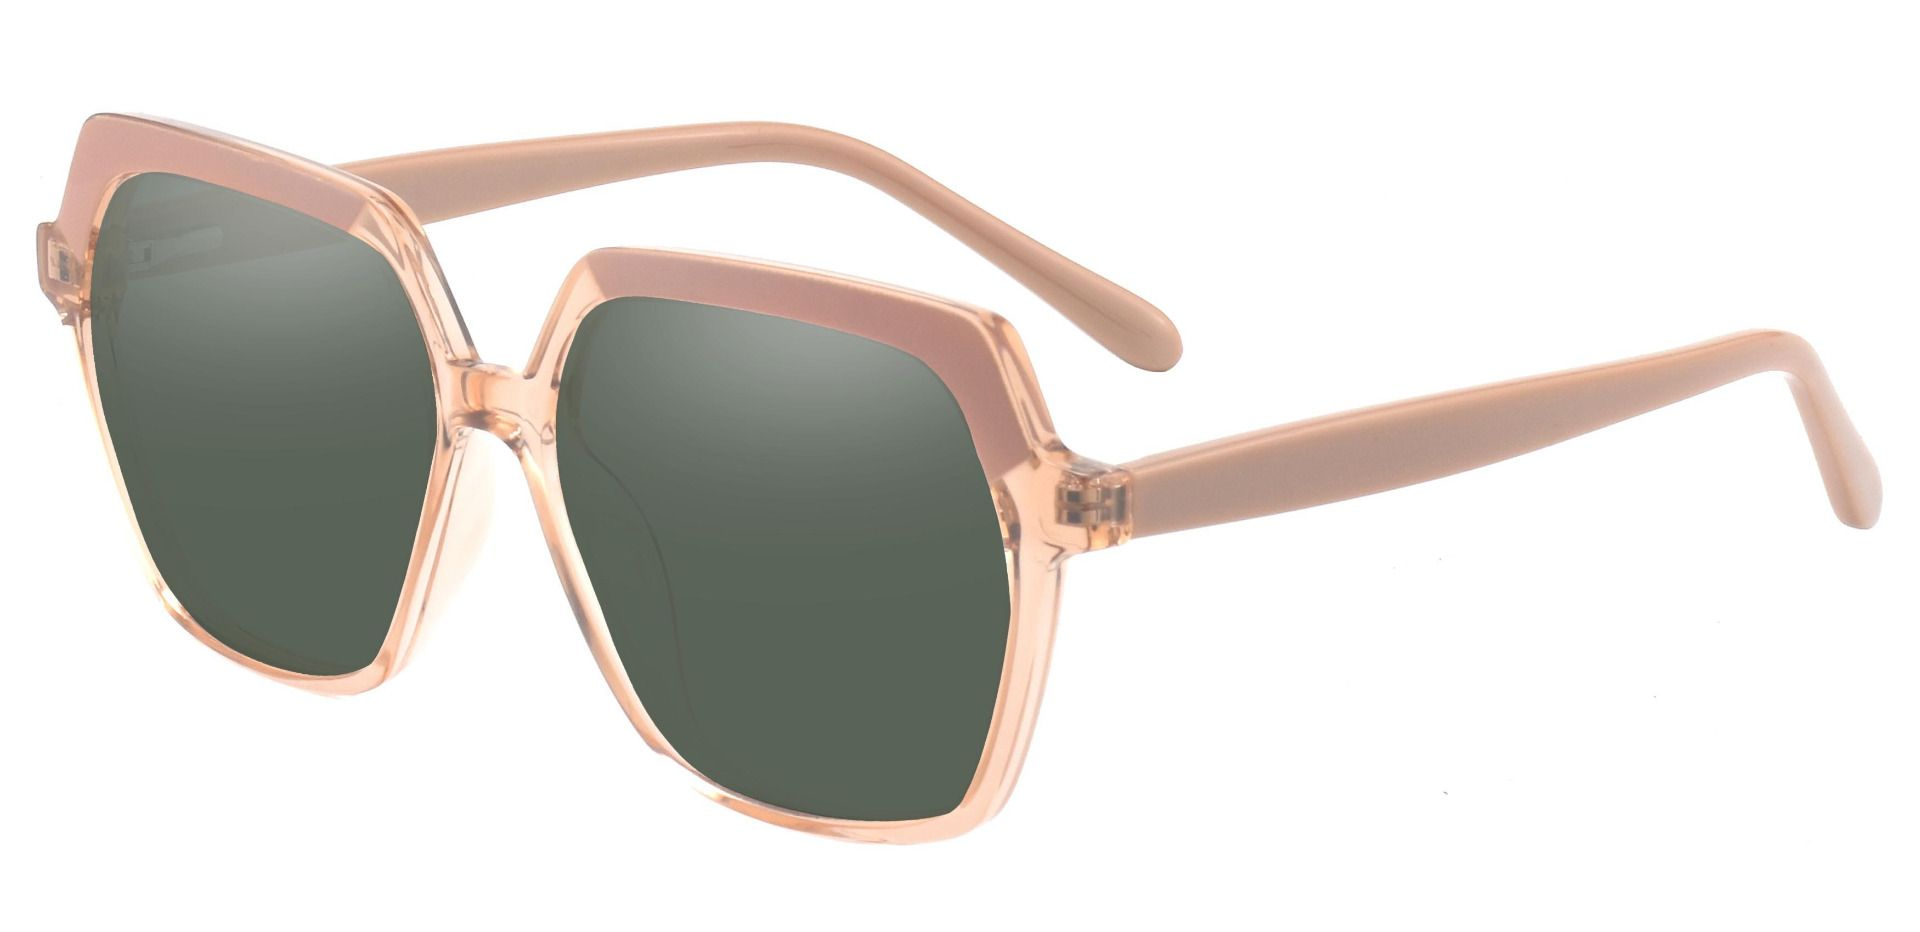 Regent Geometric Non-Rx Sunglasses - Brown Frame With Green Lenses